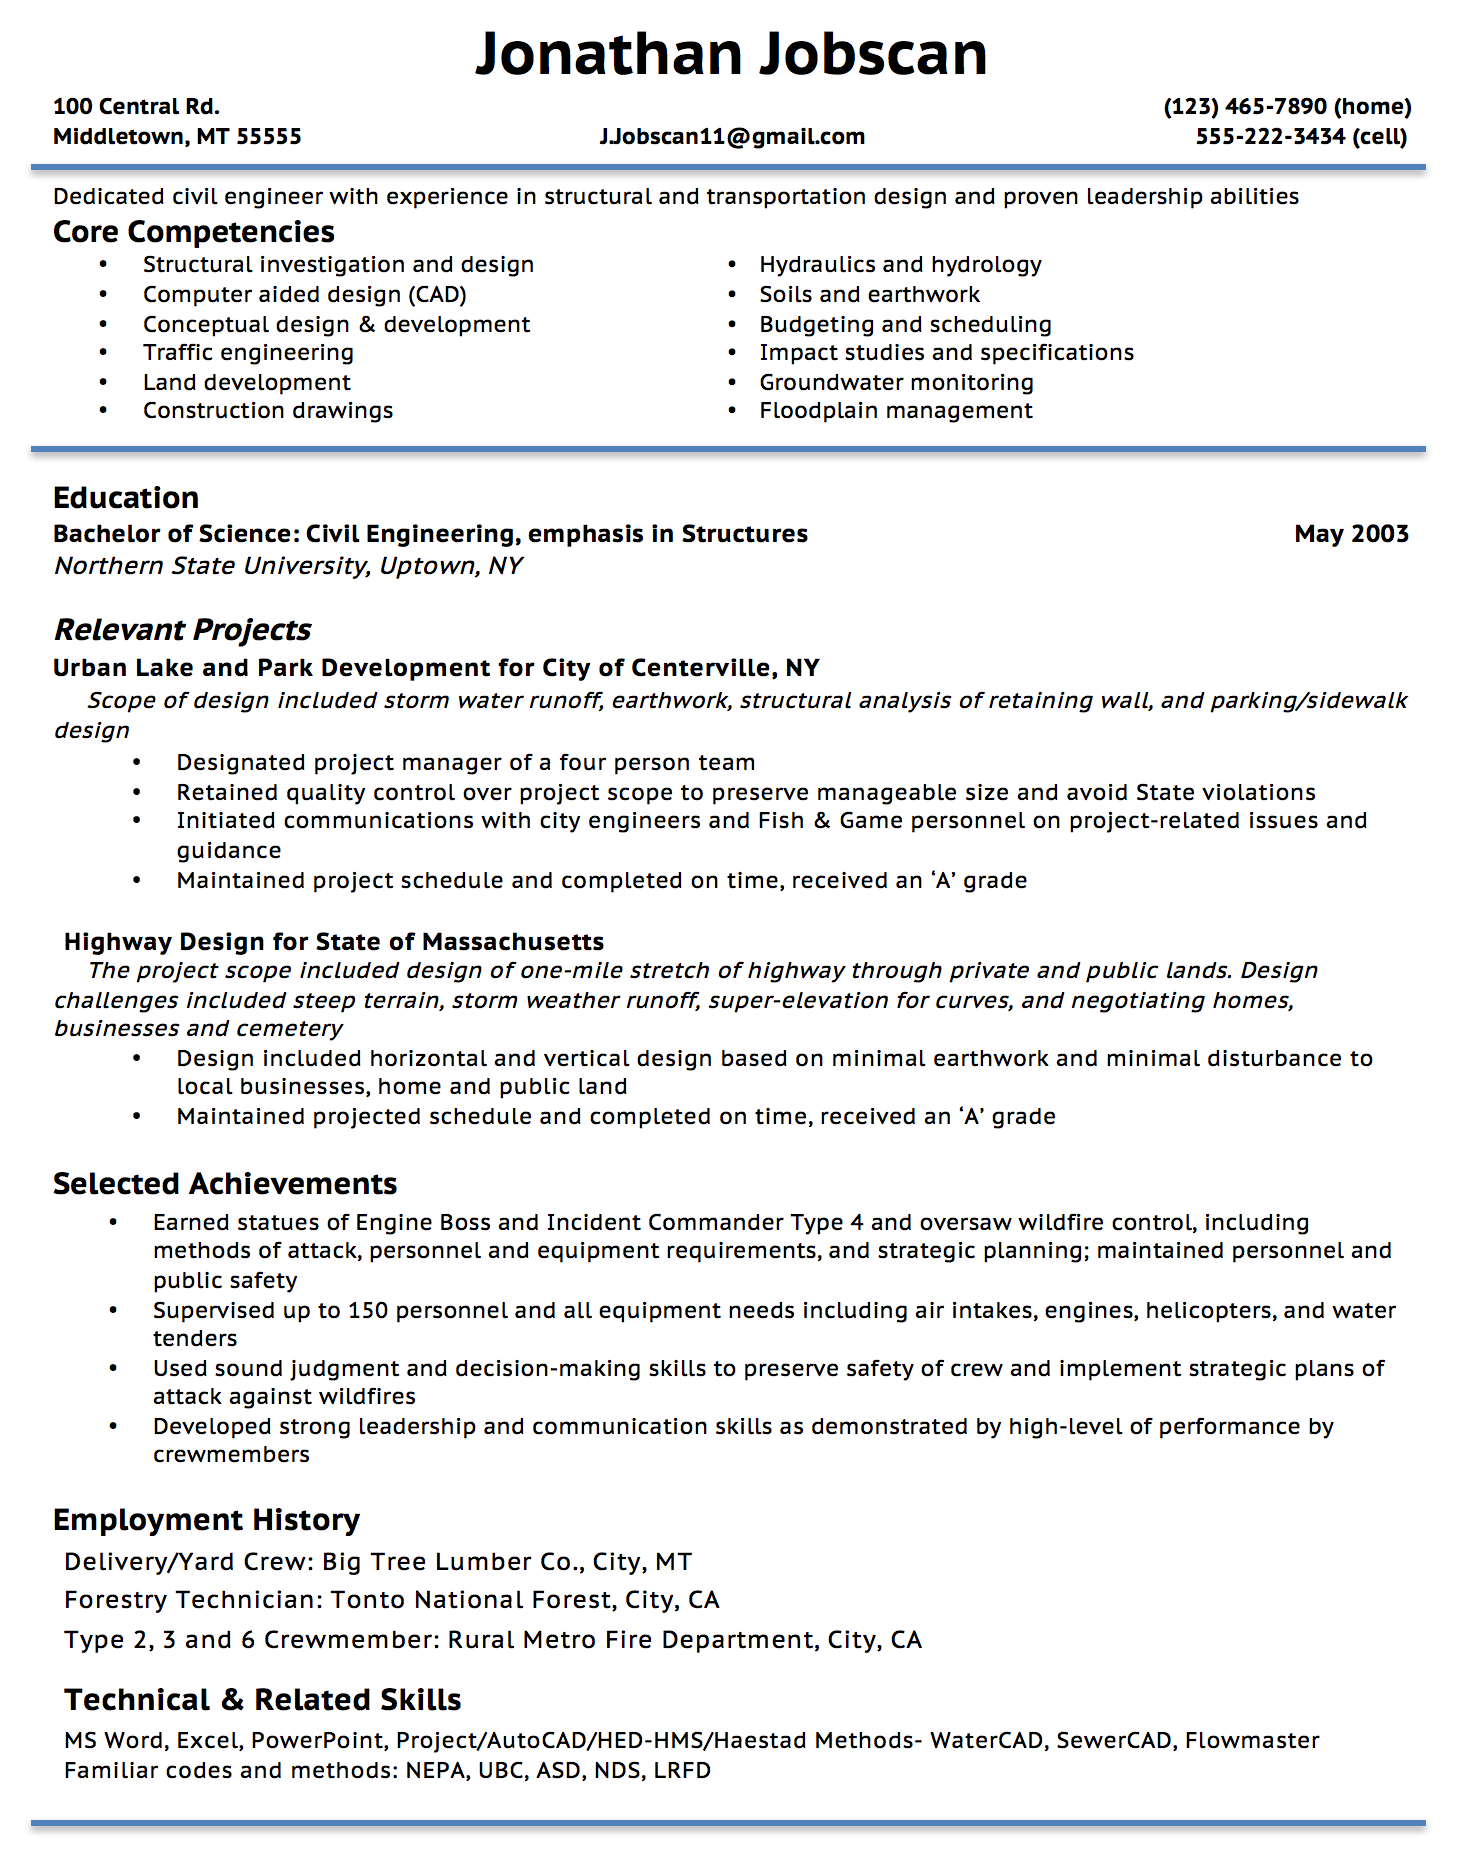 Opposenewapstandardsus  Pleasing Resume Writing Guide  Jobscan With Inspiring Example Of A Functional Resume Format With Breathtaking Resume For Someone With No Experience Also Tech Support Resume In Addition Outline Of A Resume And Skills For Customer Service Resume As Well As Paralegal Resume Sample Additionally Personal Statement Resume From Jobscanco With Opposenewapstandardsus  Inspiring Resume Writing Guide  Jobscan With Breathtaking Example Of A Functional Resume Format And Pleasing Resume For Someone With No Experience Also Tech Support Resume In Addition Outline Of A Resume From Jobscanco